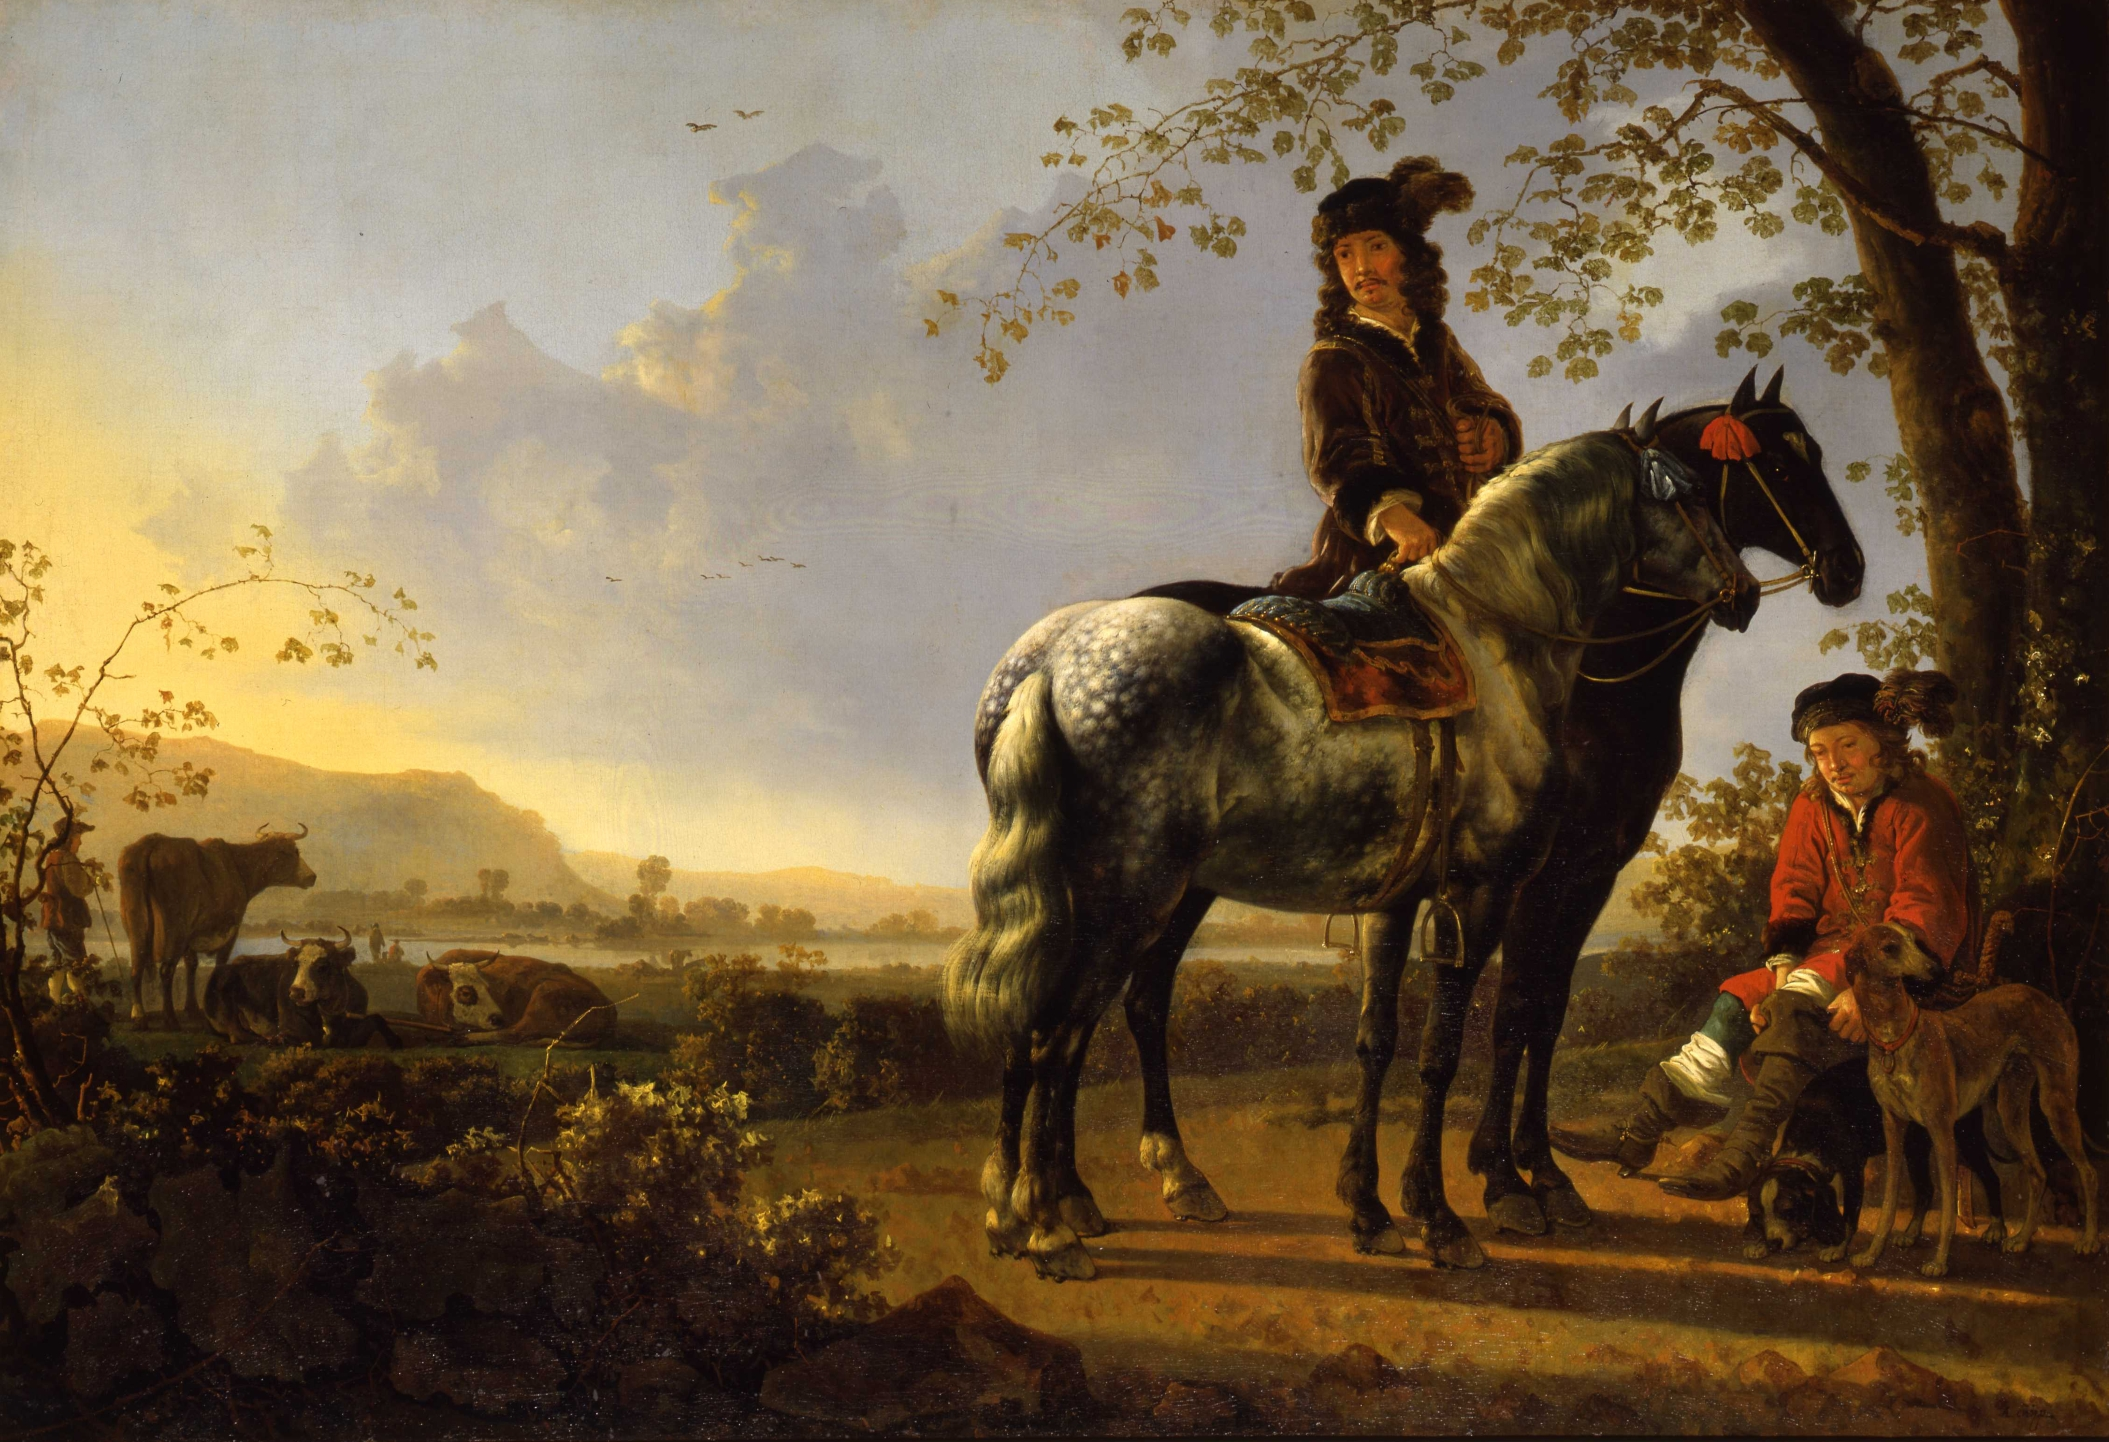 Aelbert Cuyp, Horsemen Resing in a Landscape, Collection of the Dordrecht Museum, purchased with support of Vereniging Rembrandt 1978.